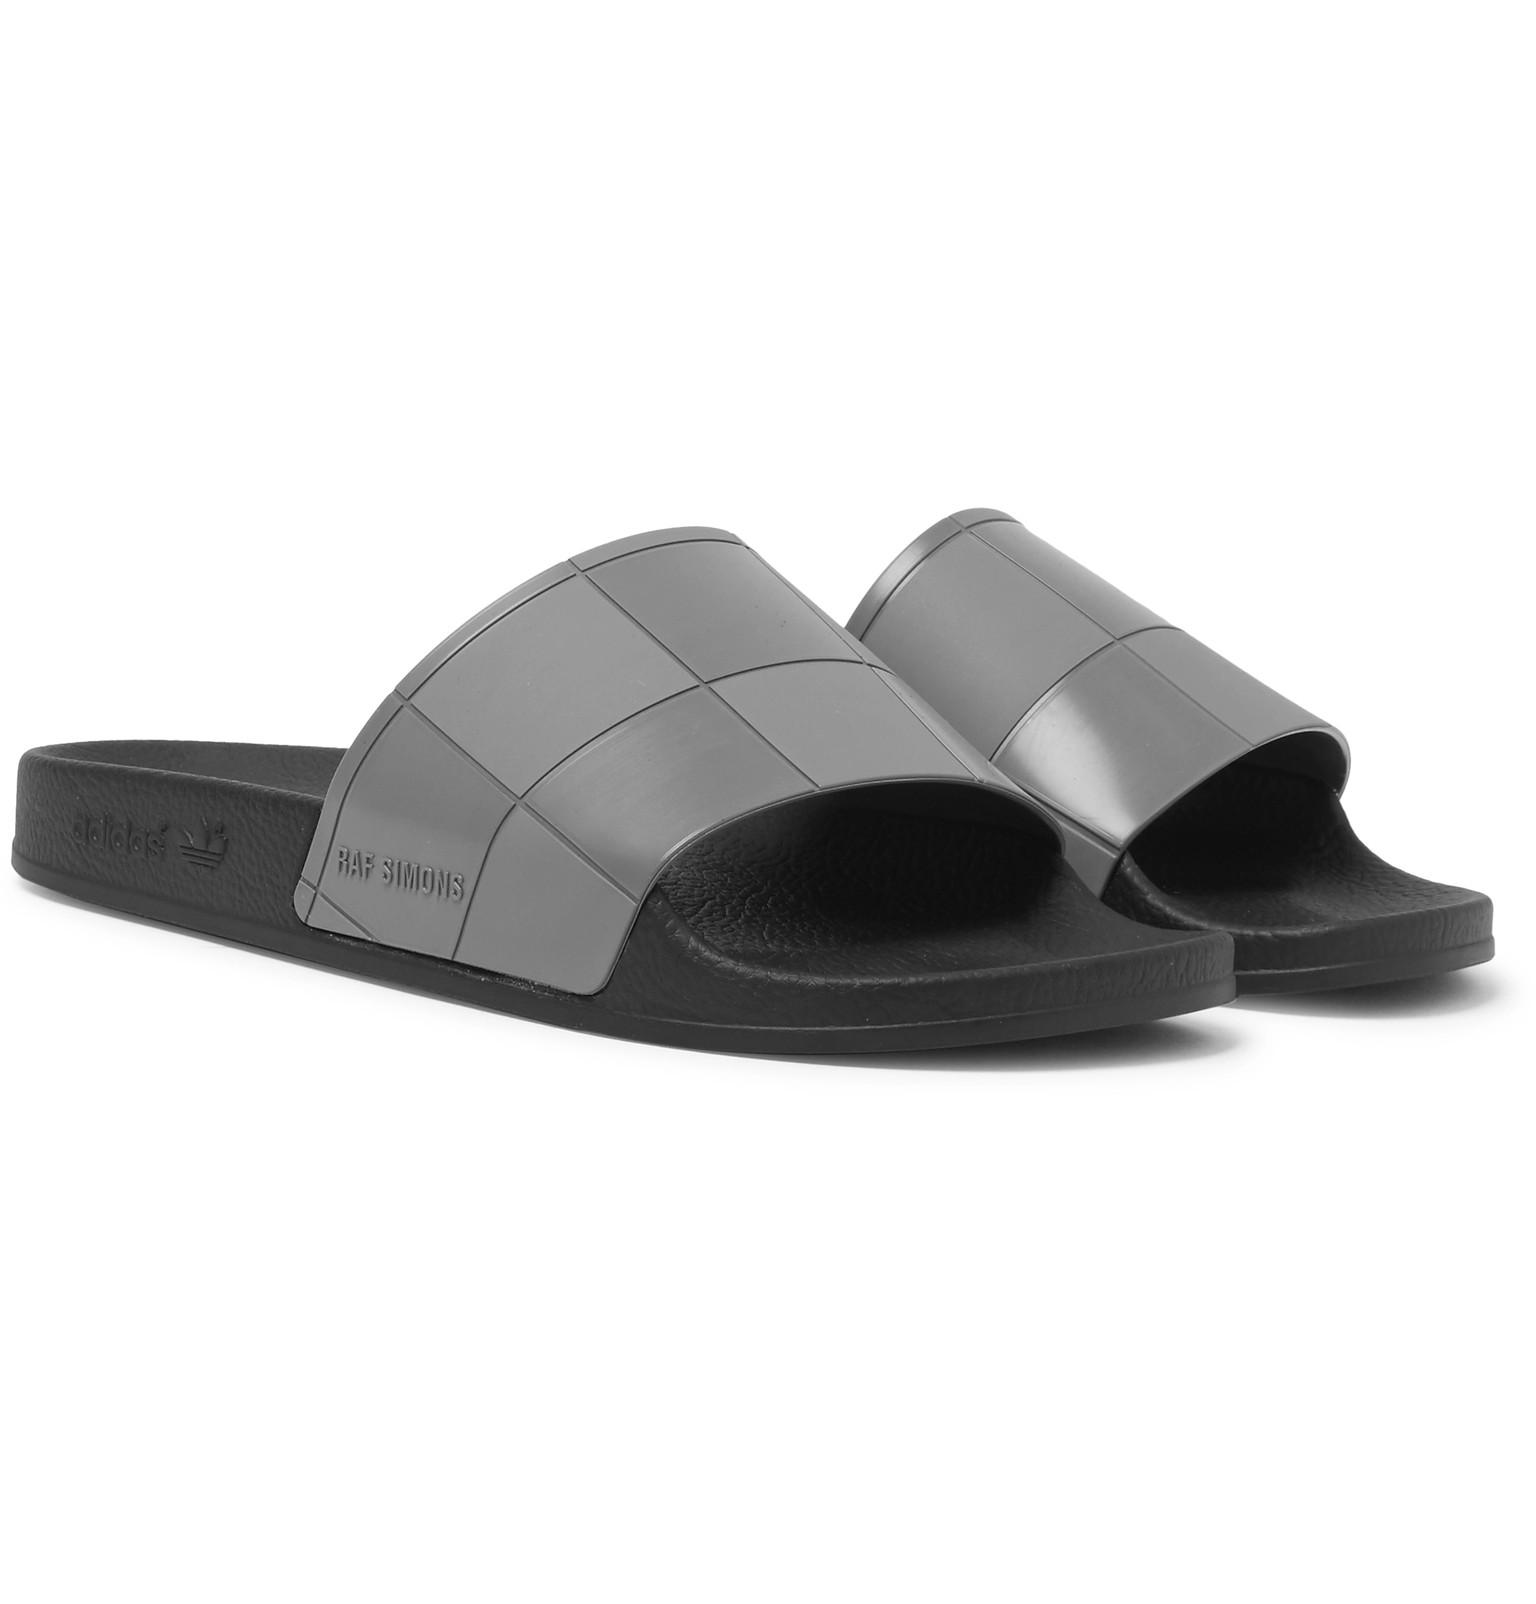 Lyst - Raf Simons Adidas Originals Adilette Rubber Slides in Gray ... cdca12987